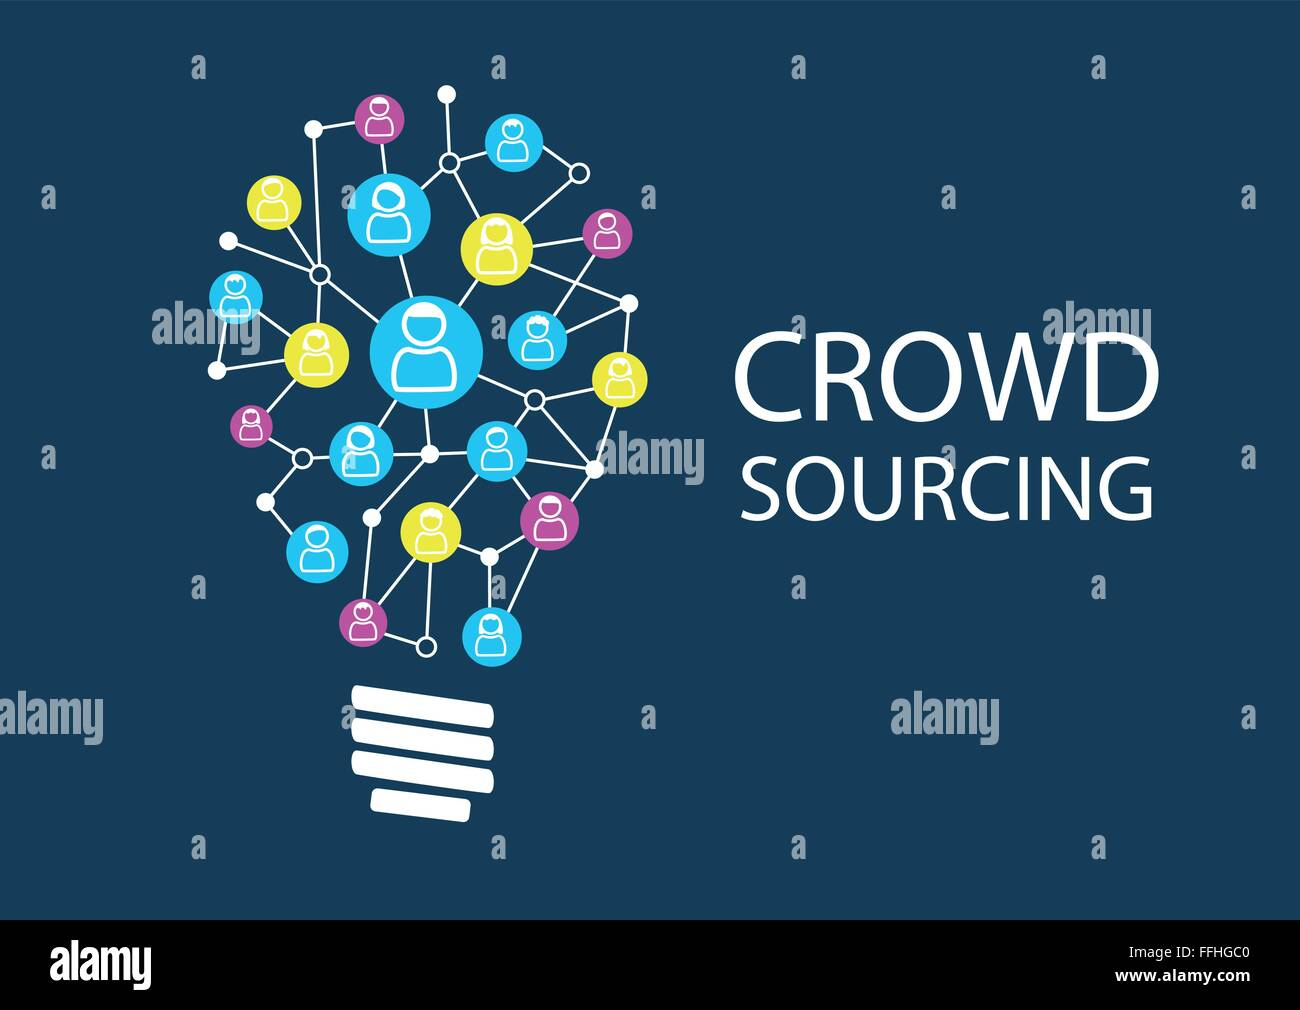 Crowd sourcing new ideas via social network brainstorming. Ideation for finding disruptive business models represented Stock Vector